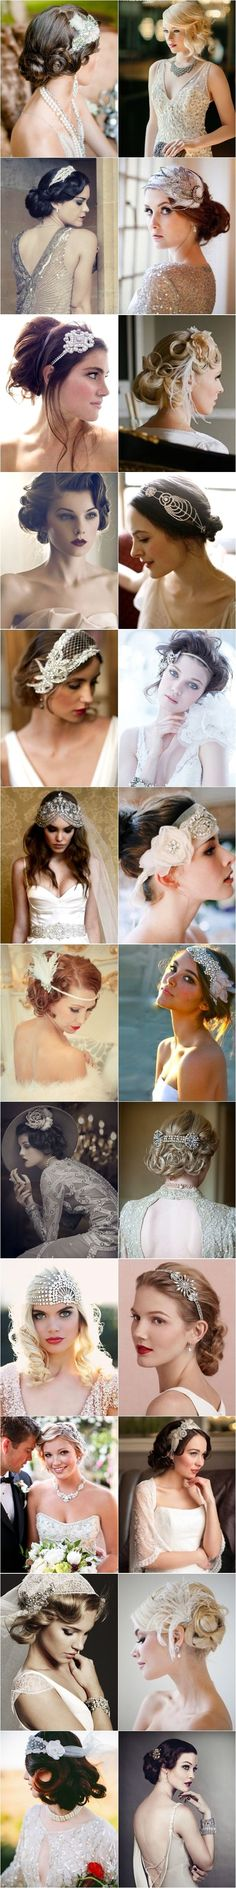 #SGWeddingGuide : 1920s Gatsby Inspired Hairstyles and Headpieces. | SGWeddingGuide.com